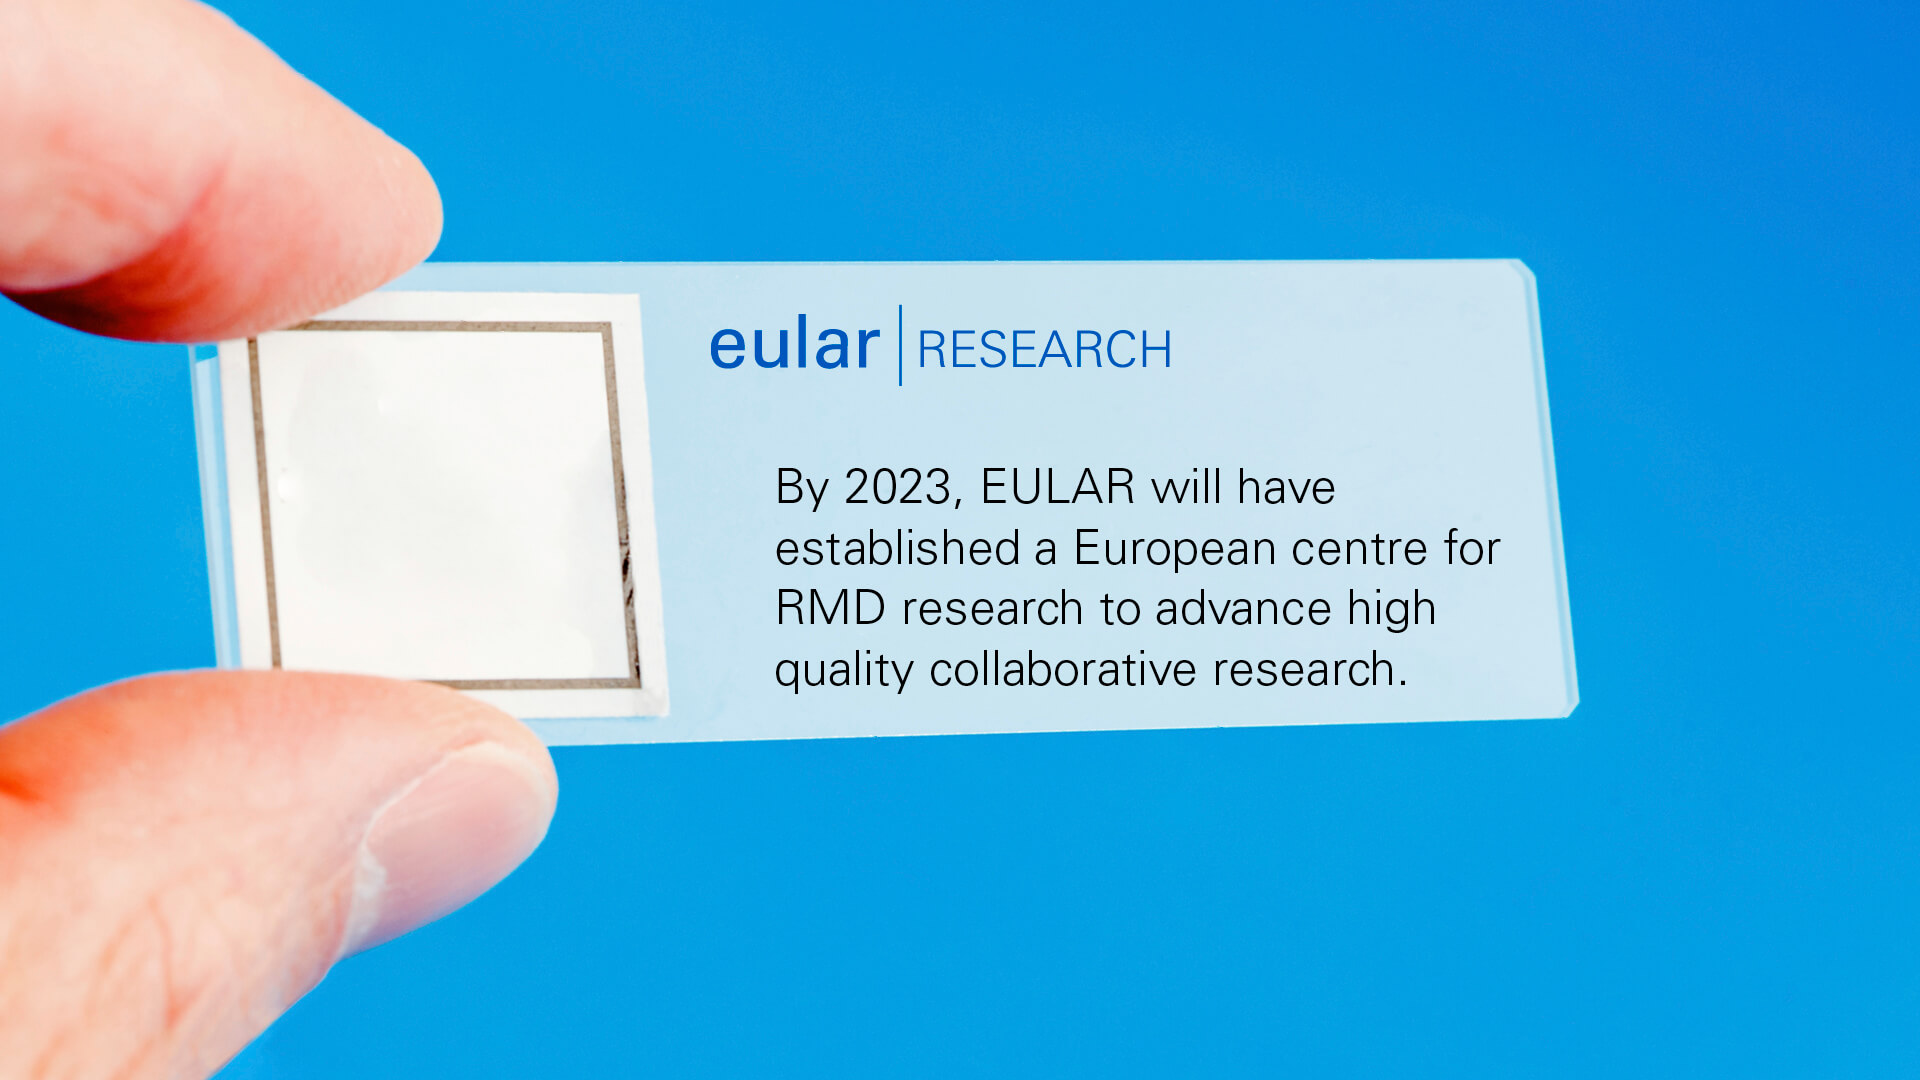 11_research_2_EULAR_strategy_slides_2021.jpg